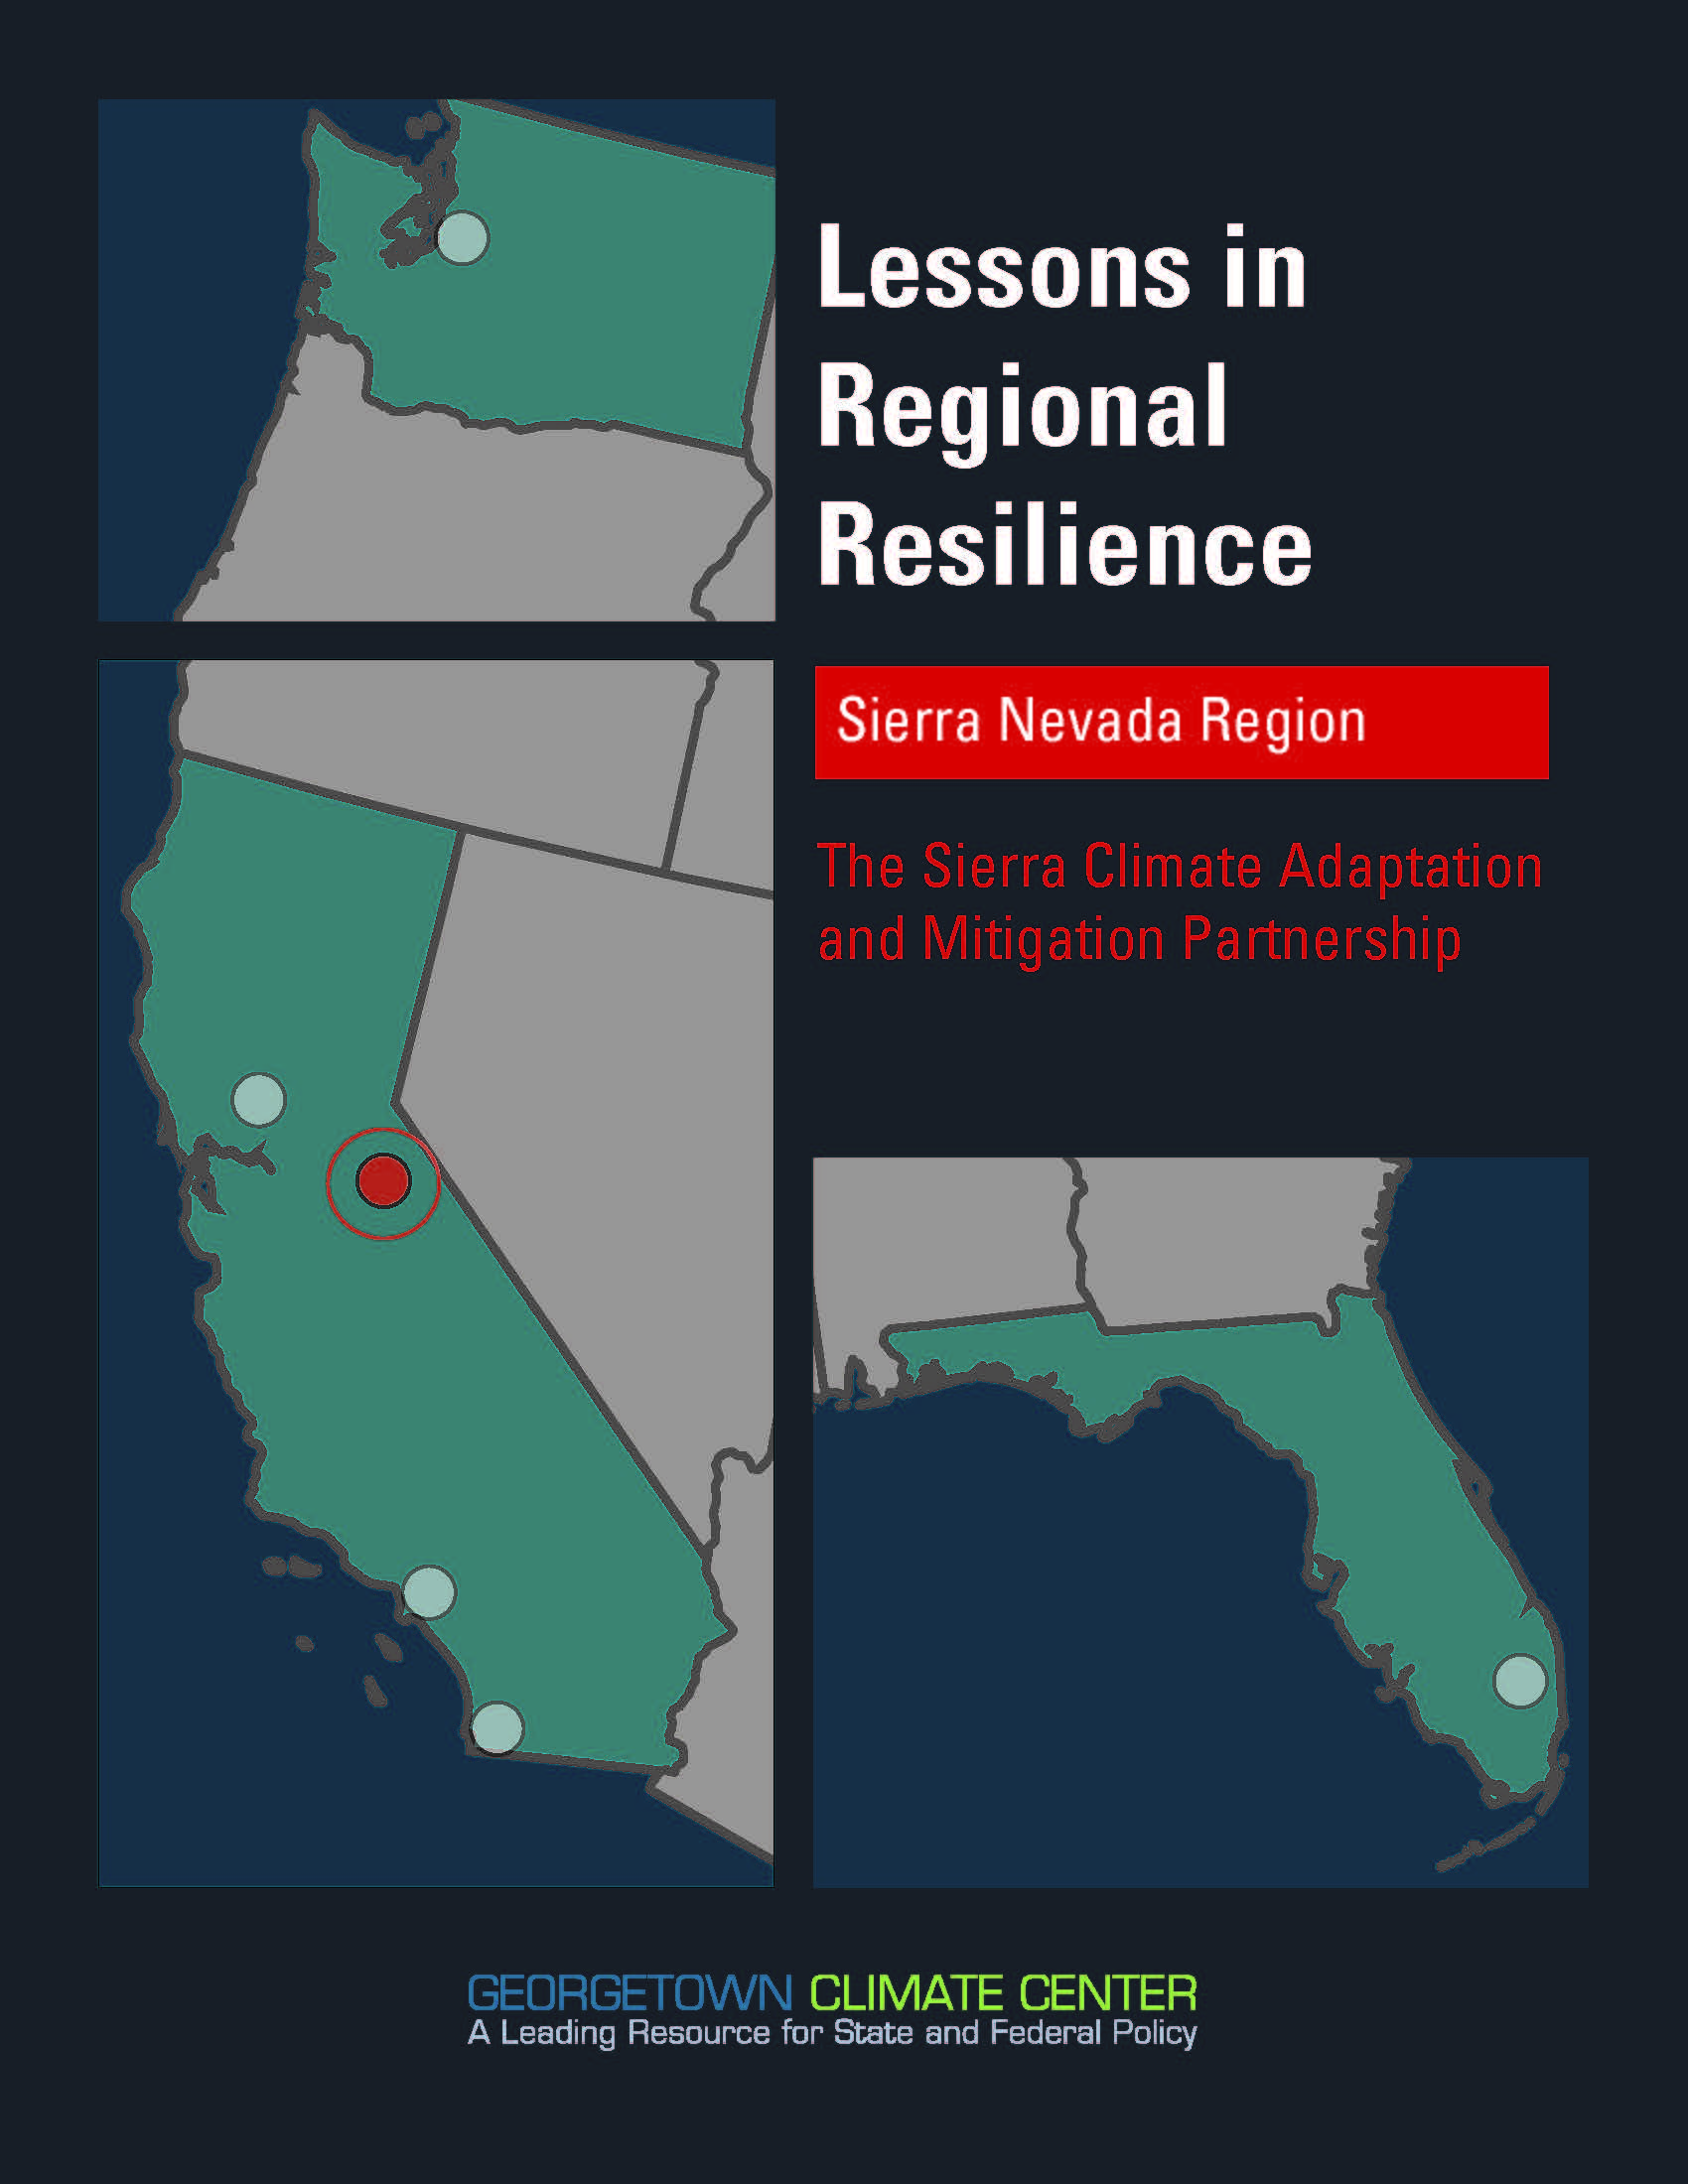 Lessons in Resilience: The Sierra Climate Adaptation and Mitigation Partnership